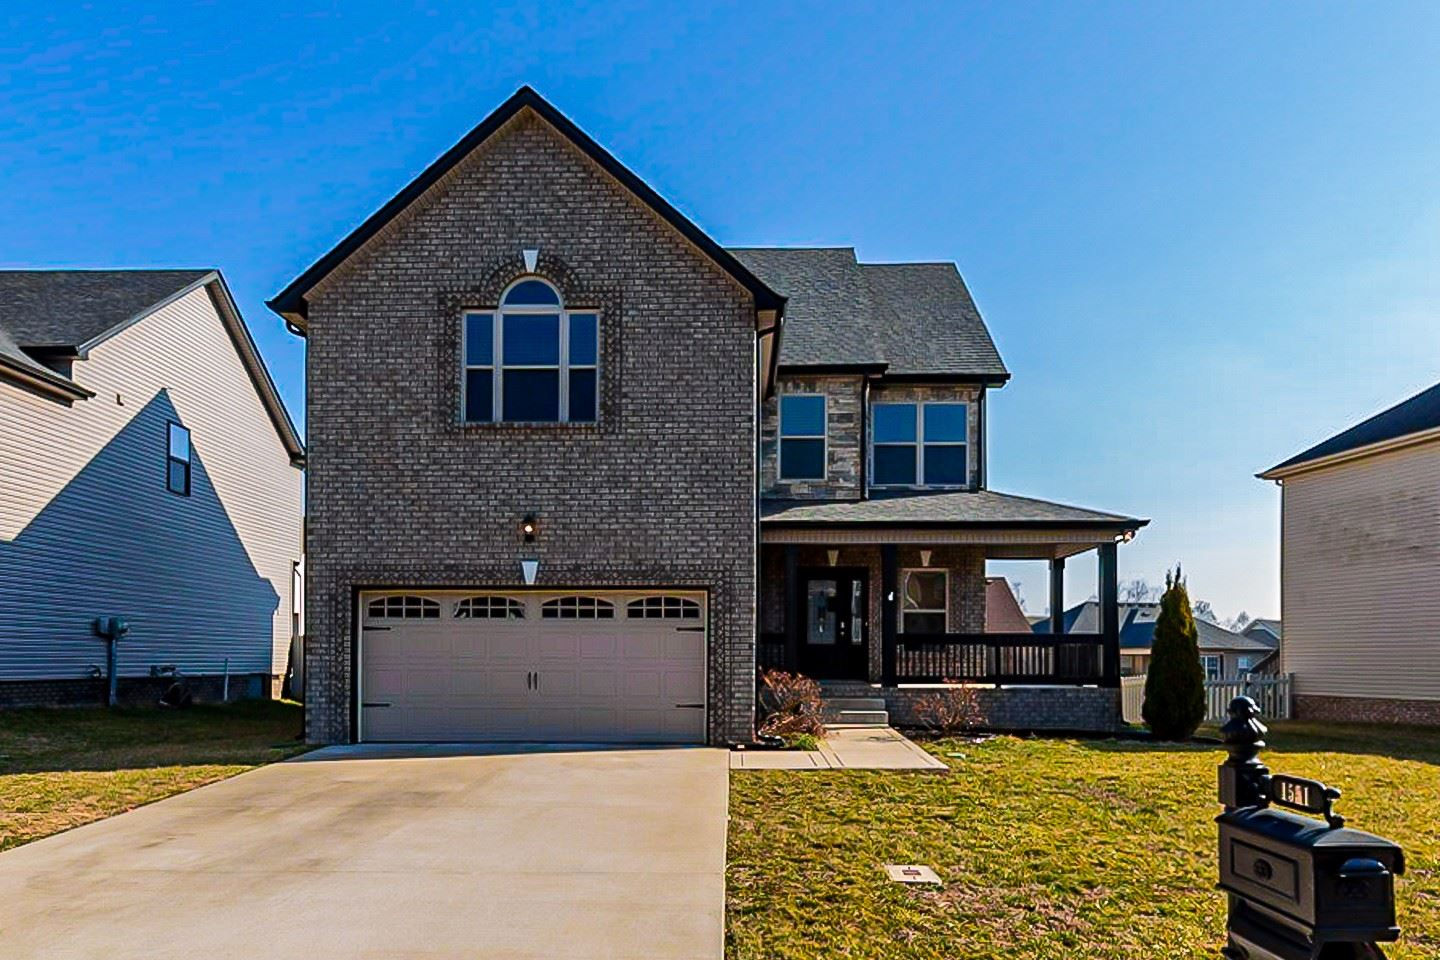 1551 Cobra Ln, Clarksville, TN 37042 - MLS#: 2231533